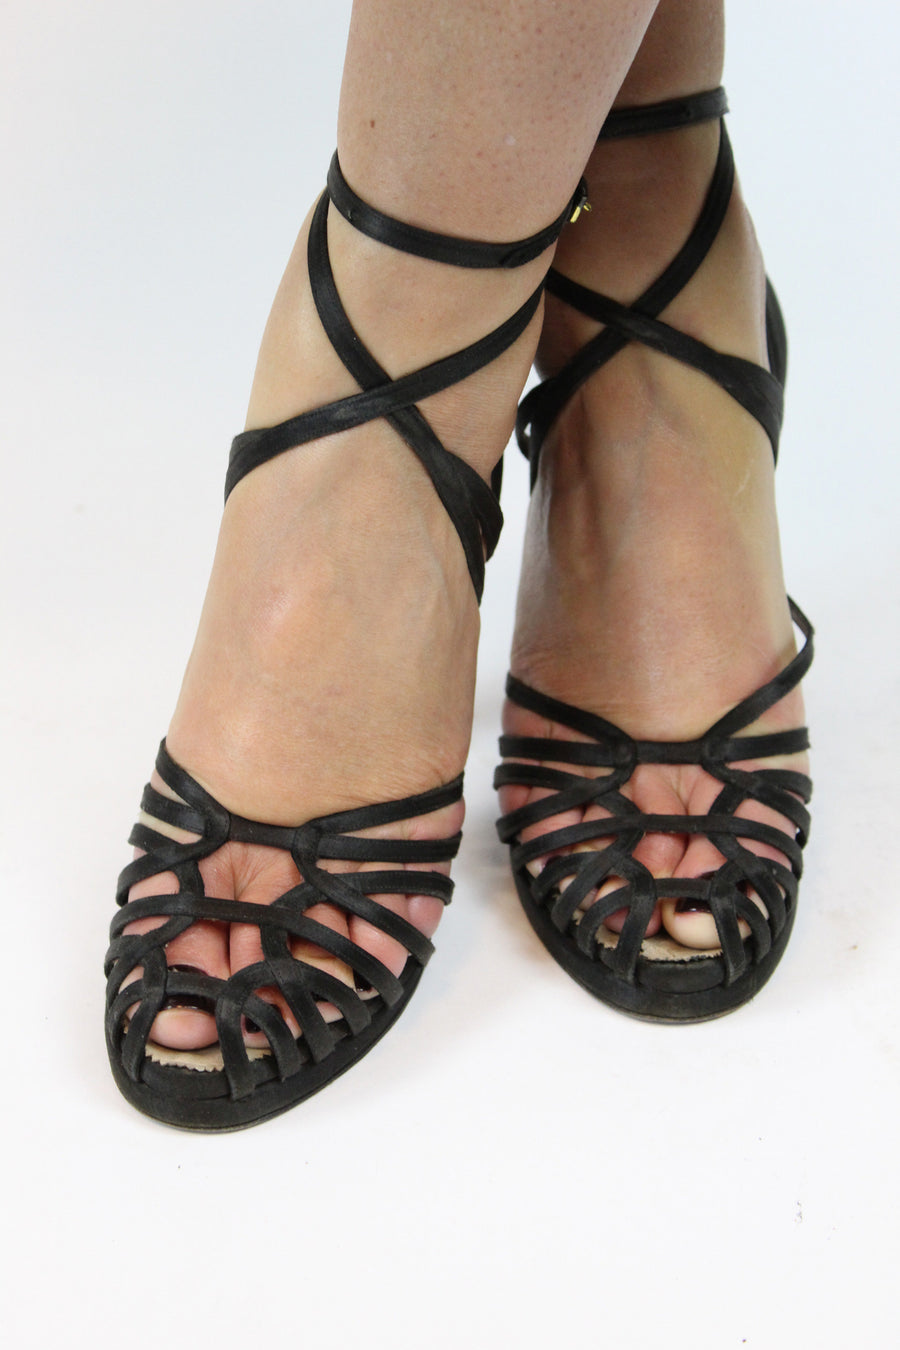 1940s ultra strappy shoes Size 4US | ankle strap platform cage heels